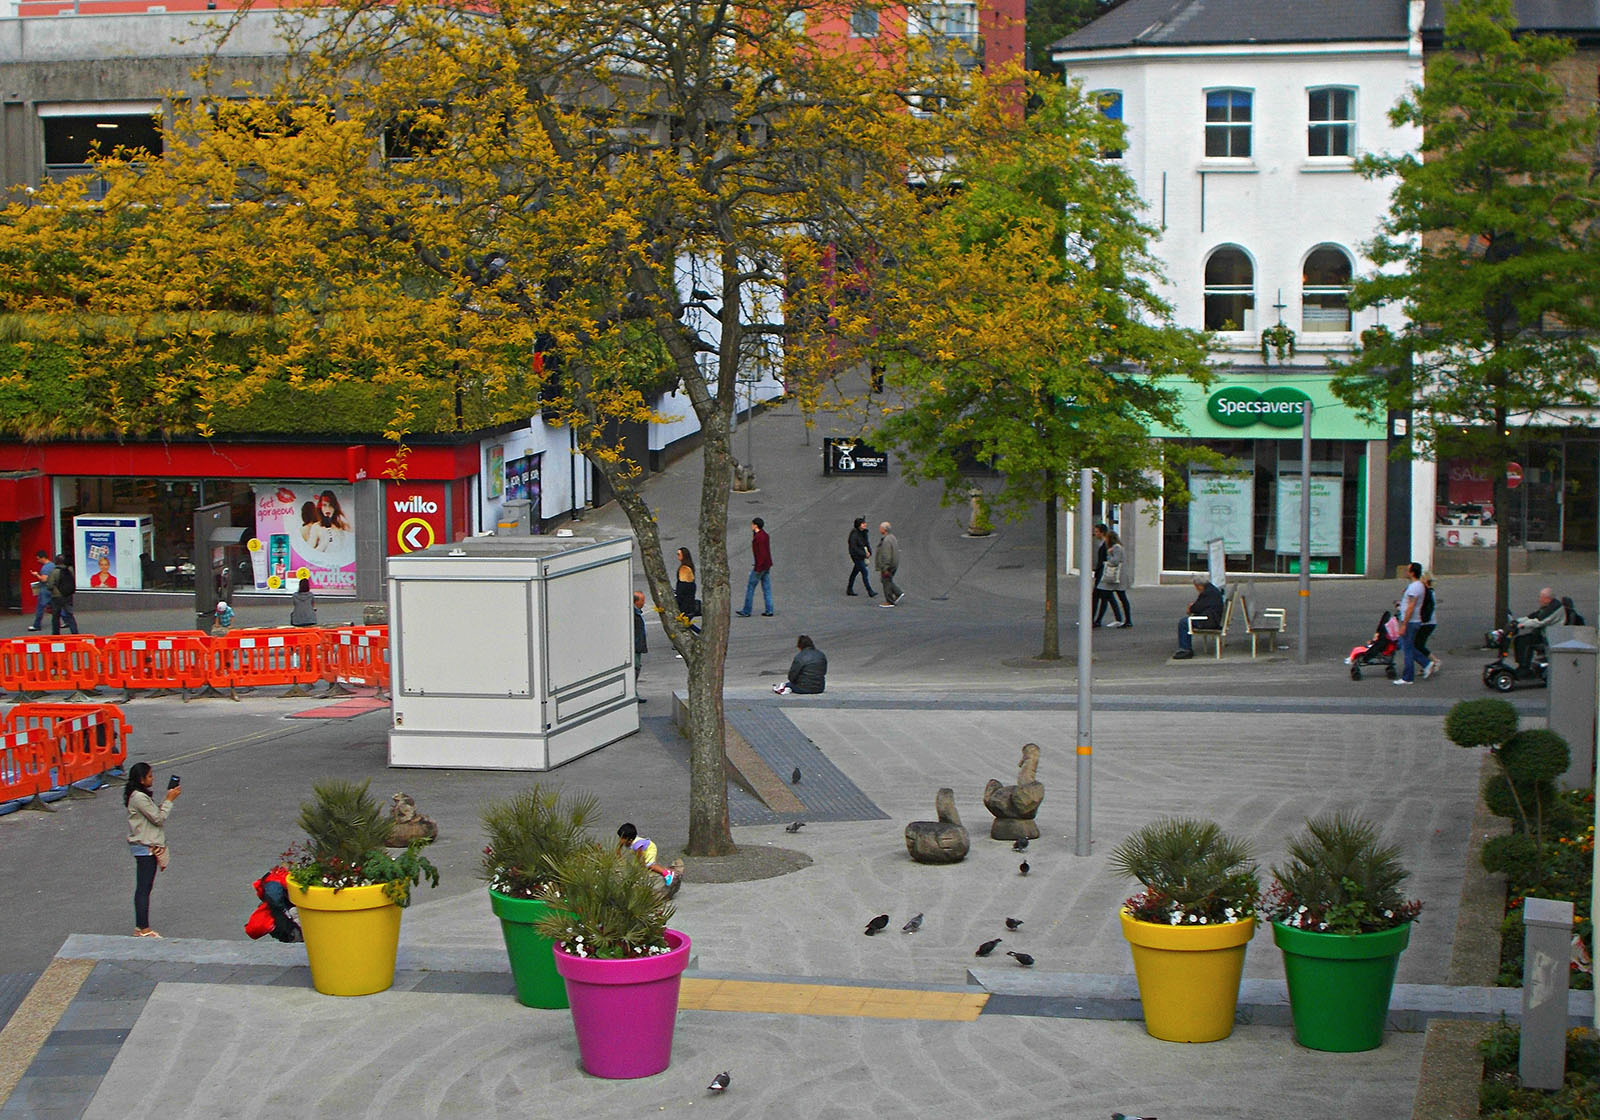 The central square just off the high street in Sutton.